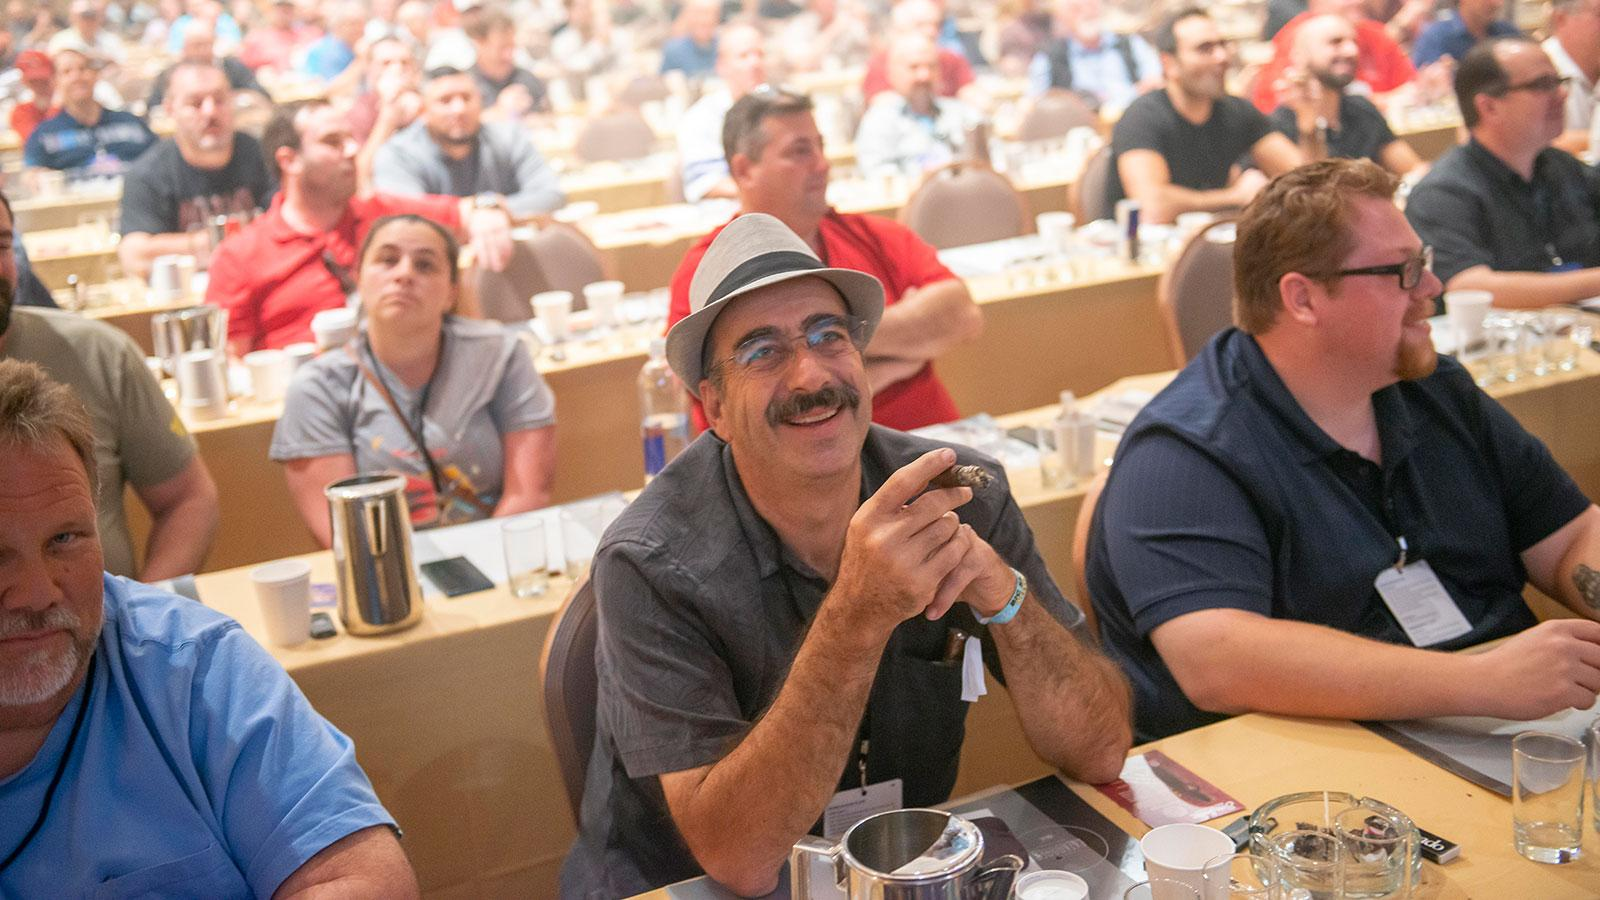 Making cigars with a smile at the Big Smoke.